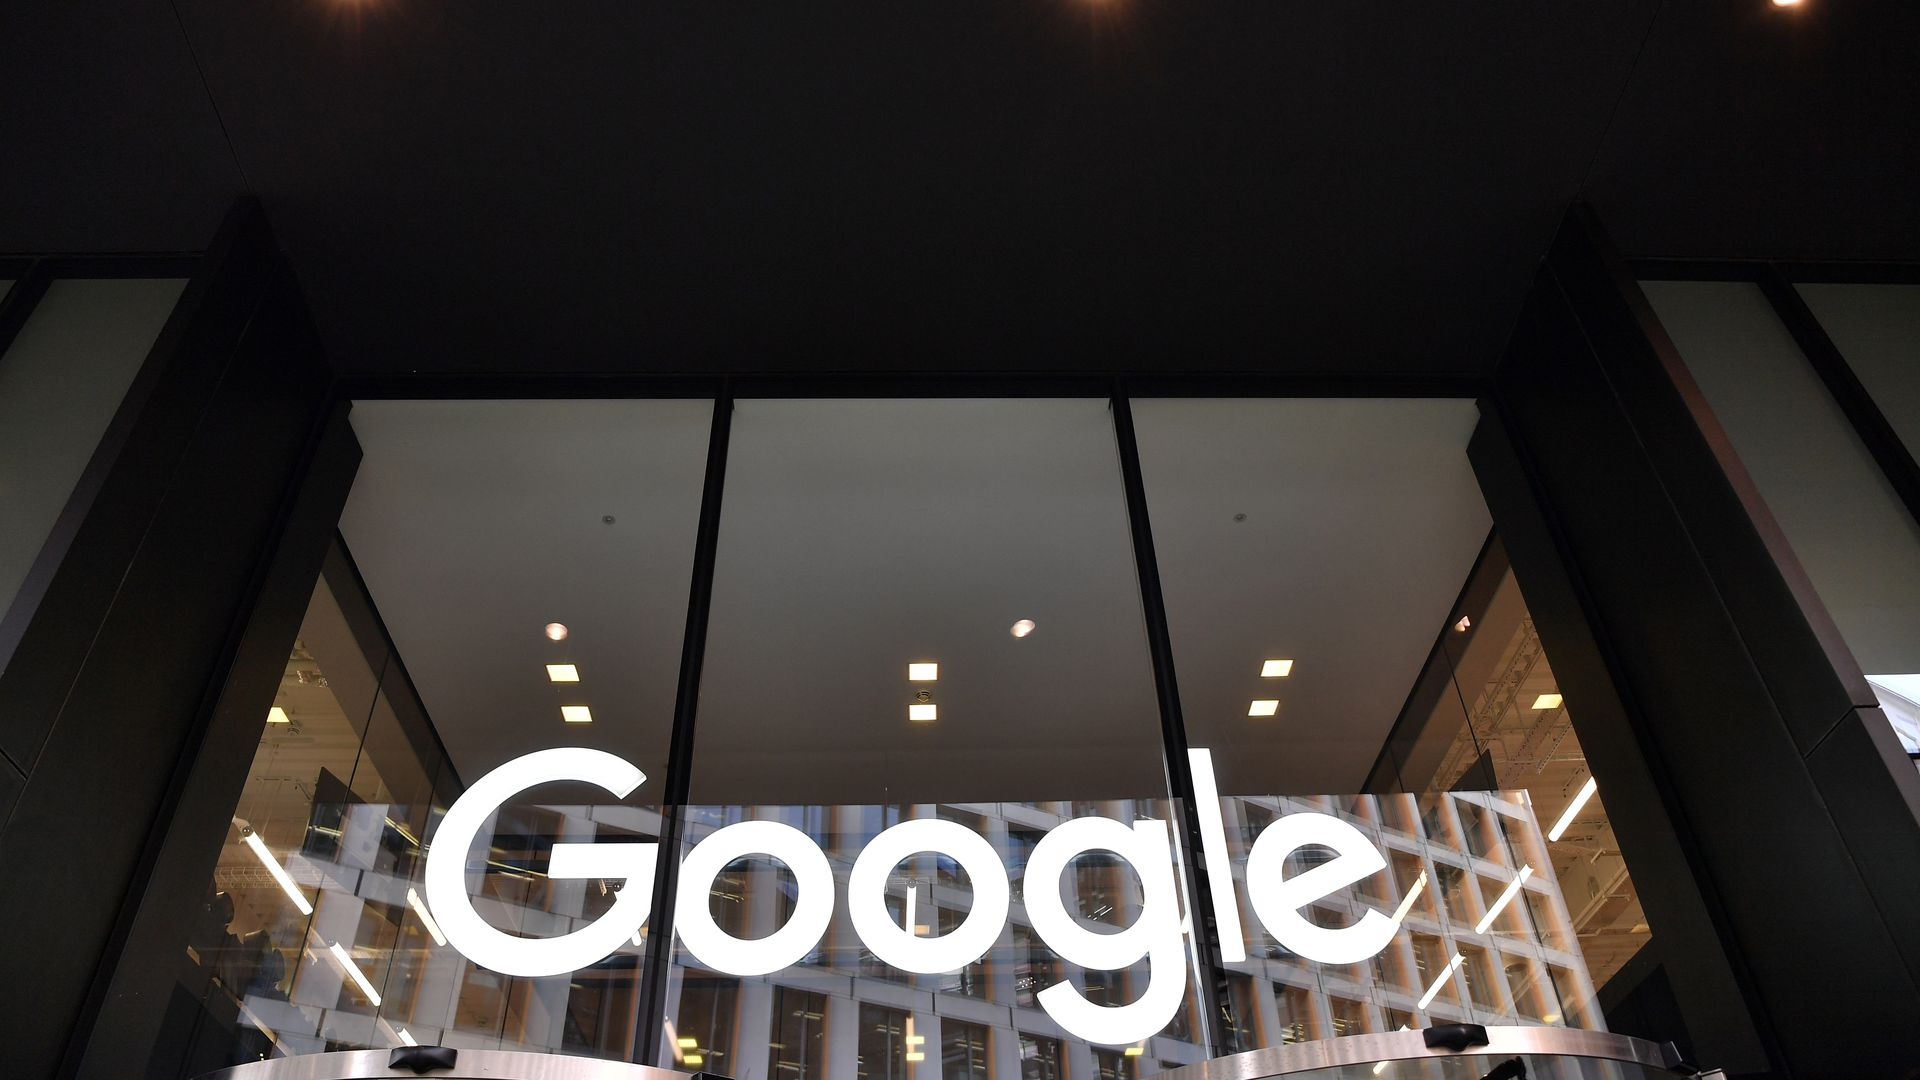 In this image, the white Google logo is seen at the bottom of three large glass windows on the side of a building.